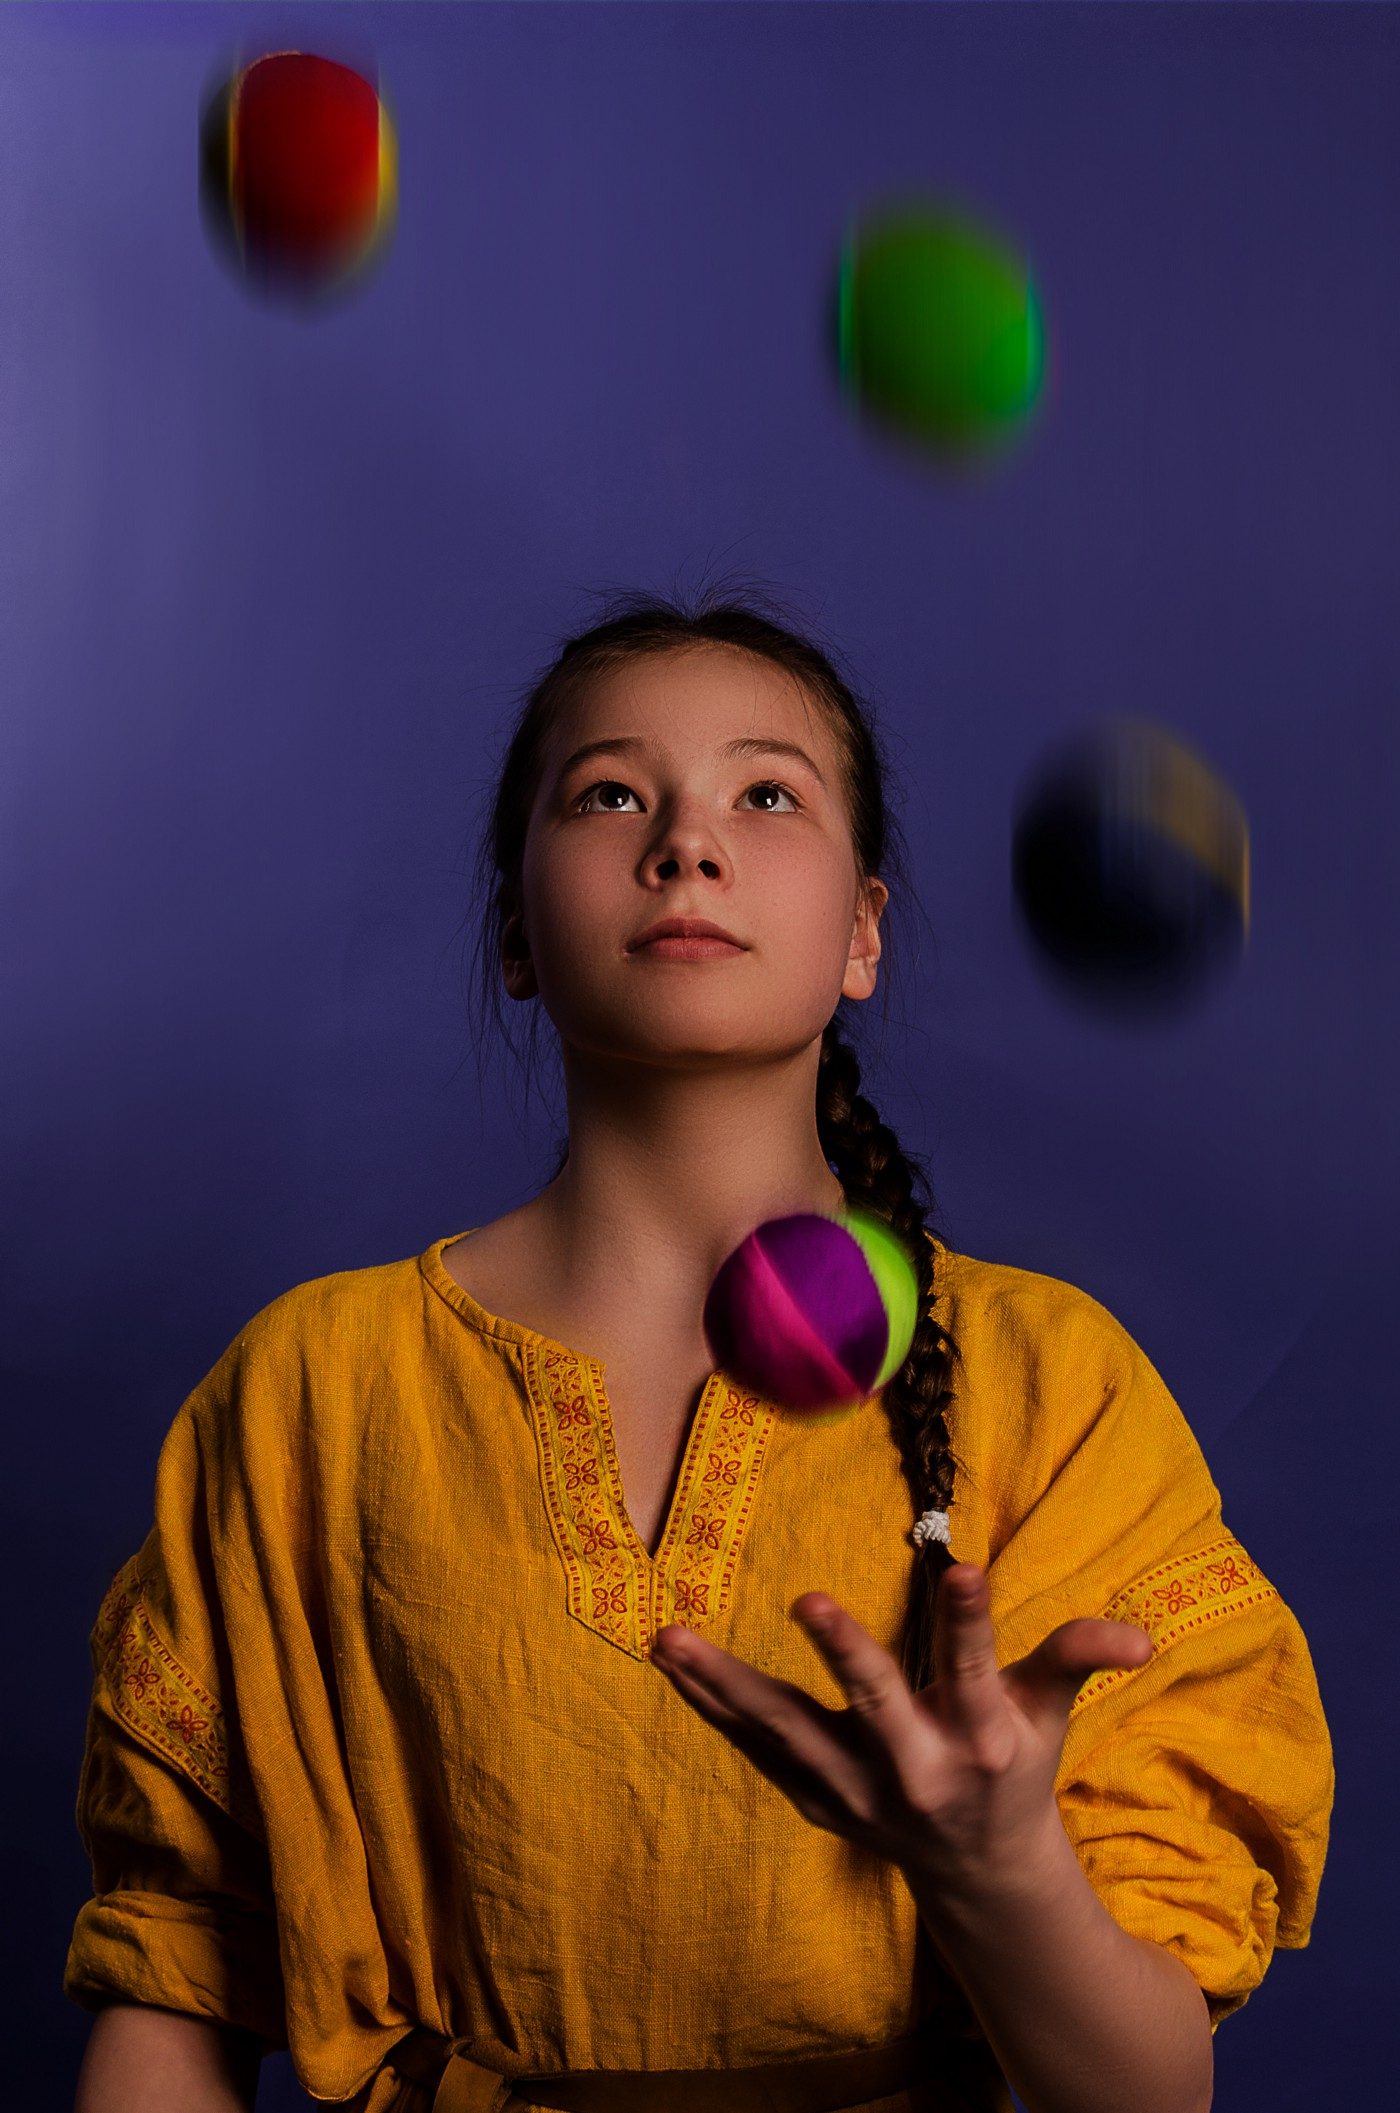 A professional woman is juggling balls, symbolizing her commitments to work, writing, and self-care